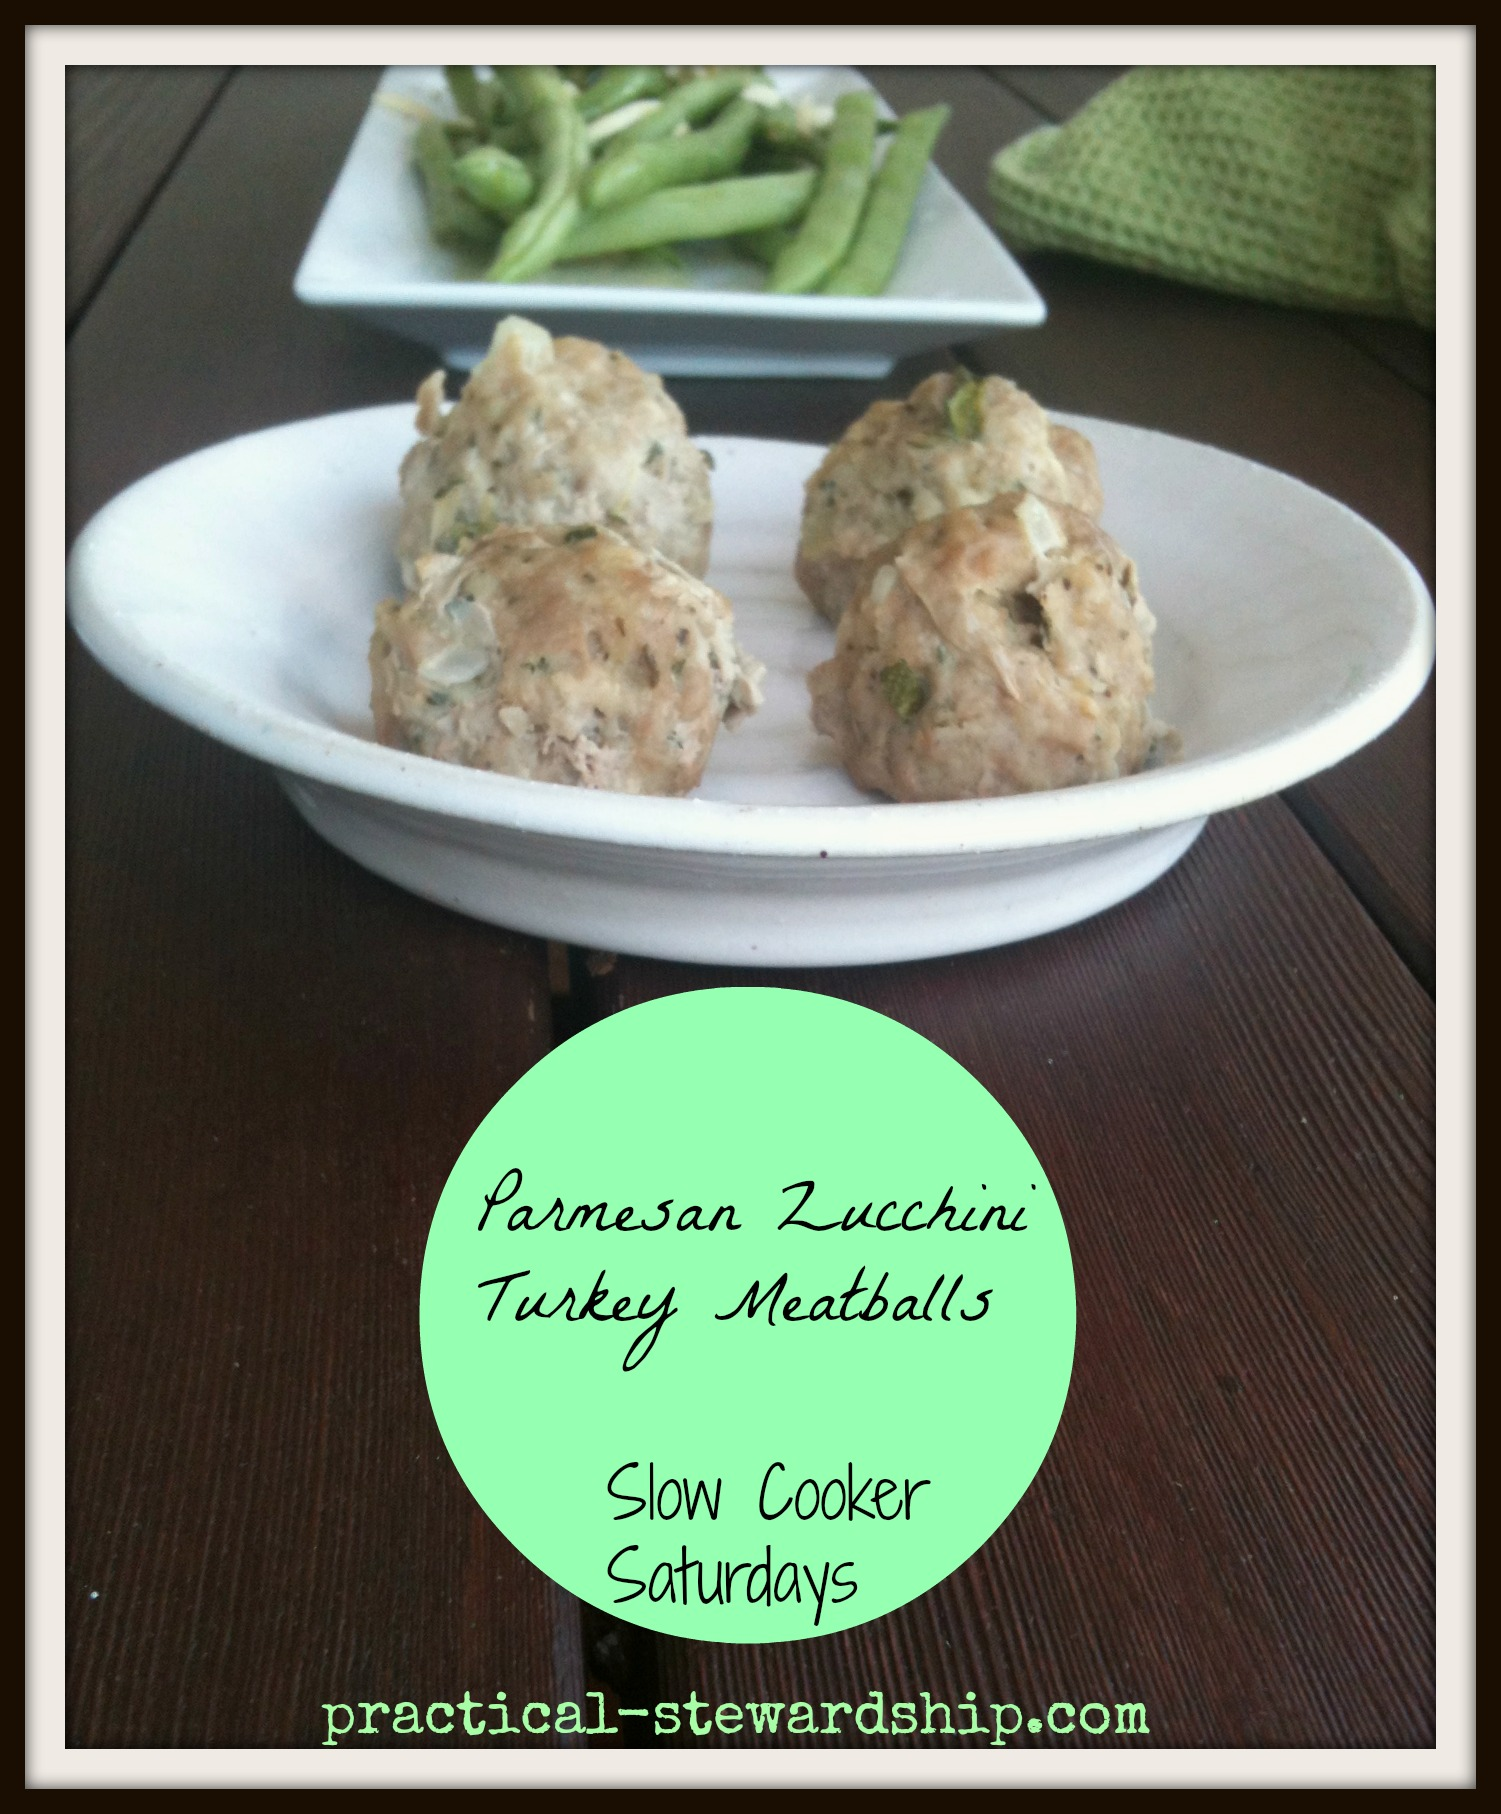 Zucchini Turkey Meatballs: Parmesan Zucchini Turkey Meatballs Crock-pot Or Not Recipe